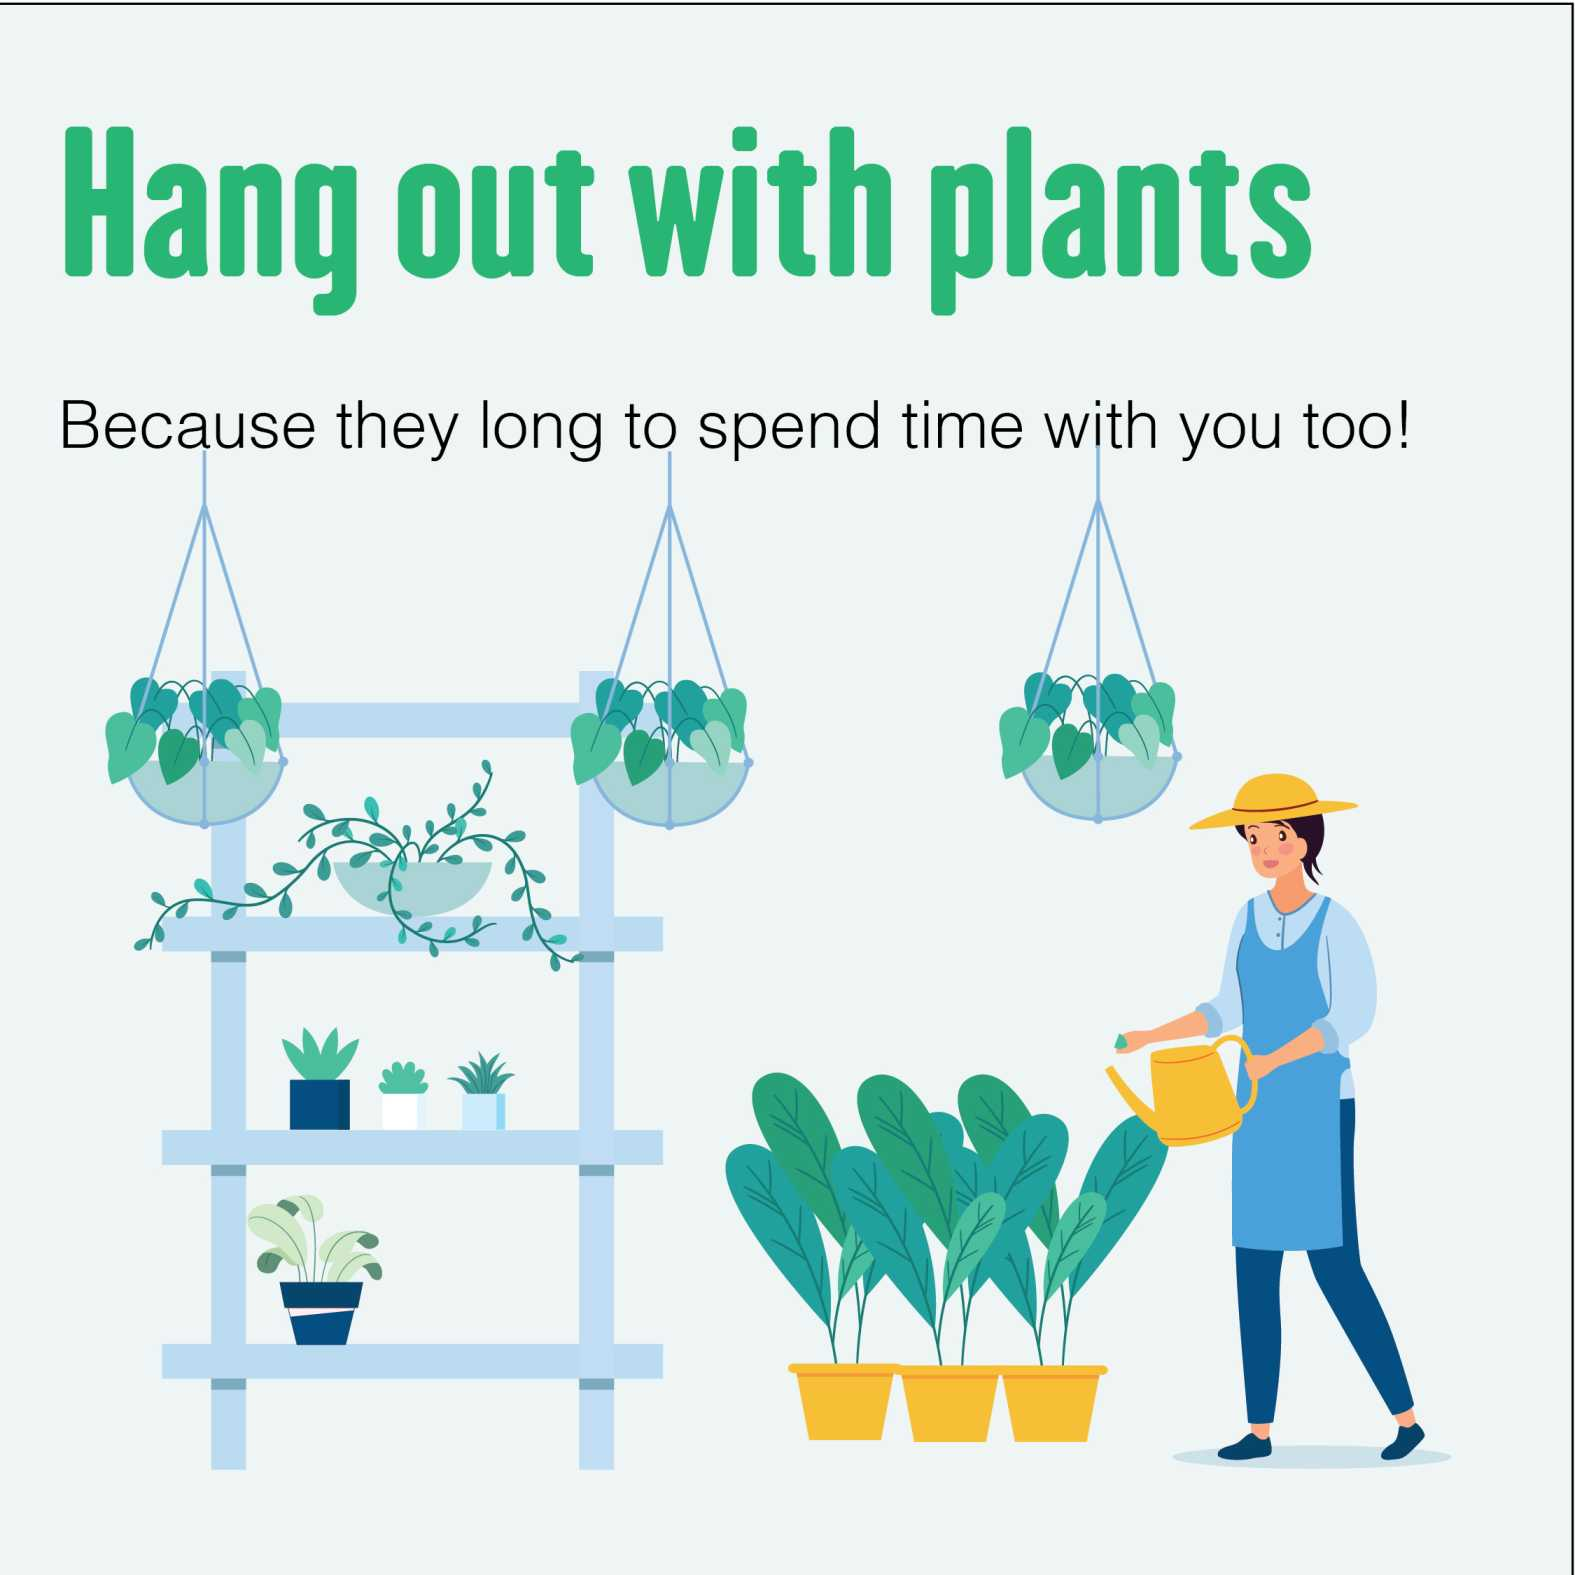 hang out with plants